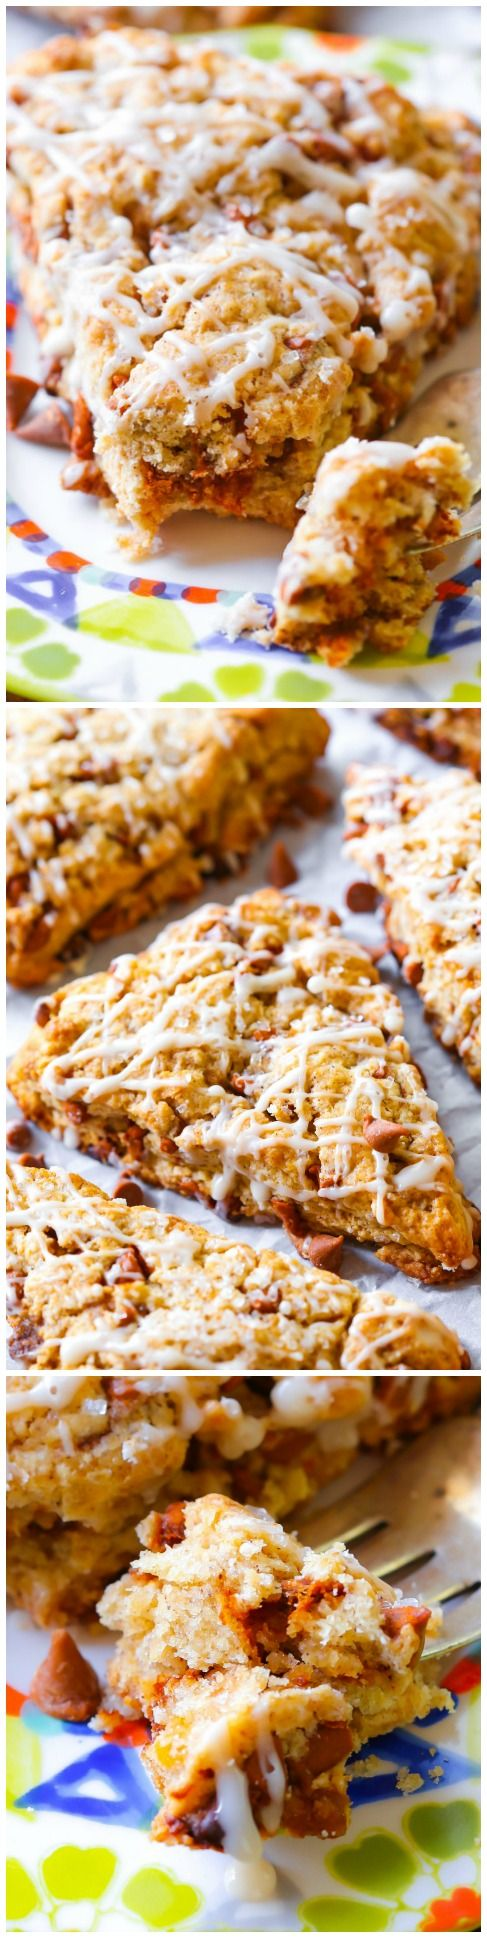 Crumbly, sweet, and tender Glazed Cinnamon Chip Scones-- you will love their texture!